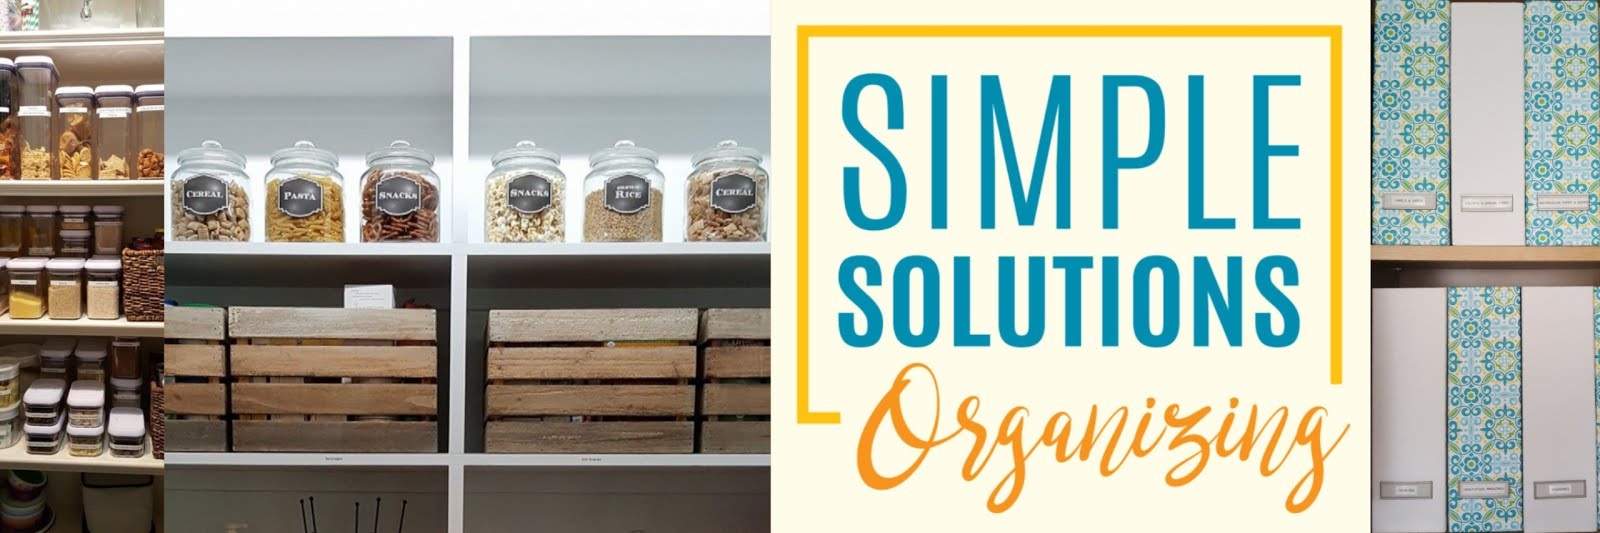 Simple Solutions Organizing